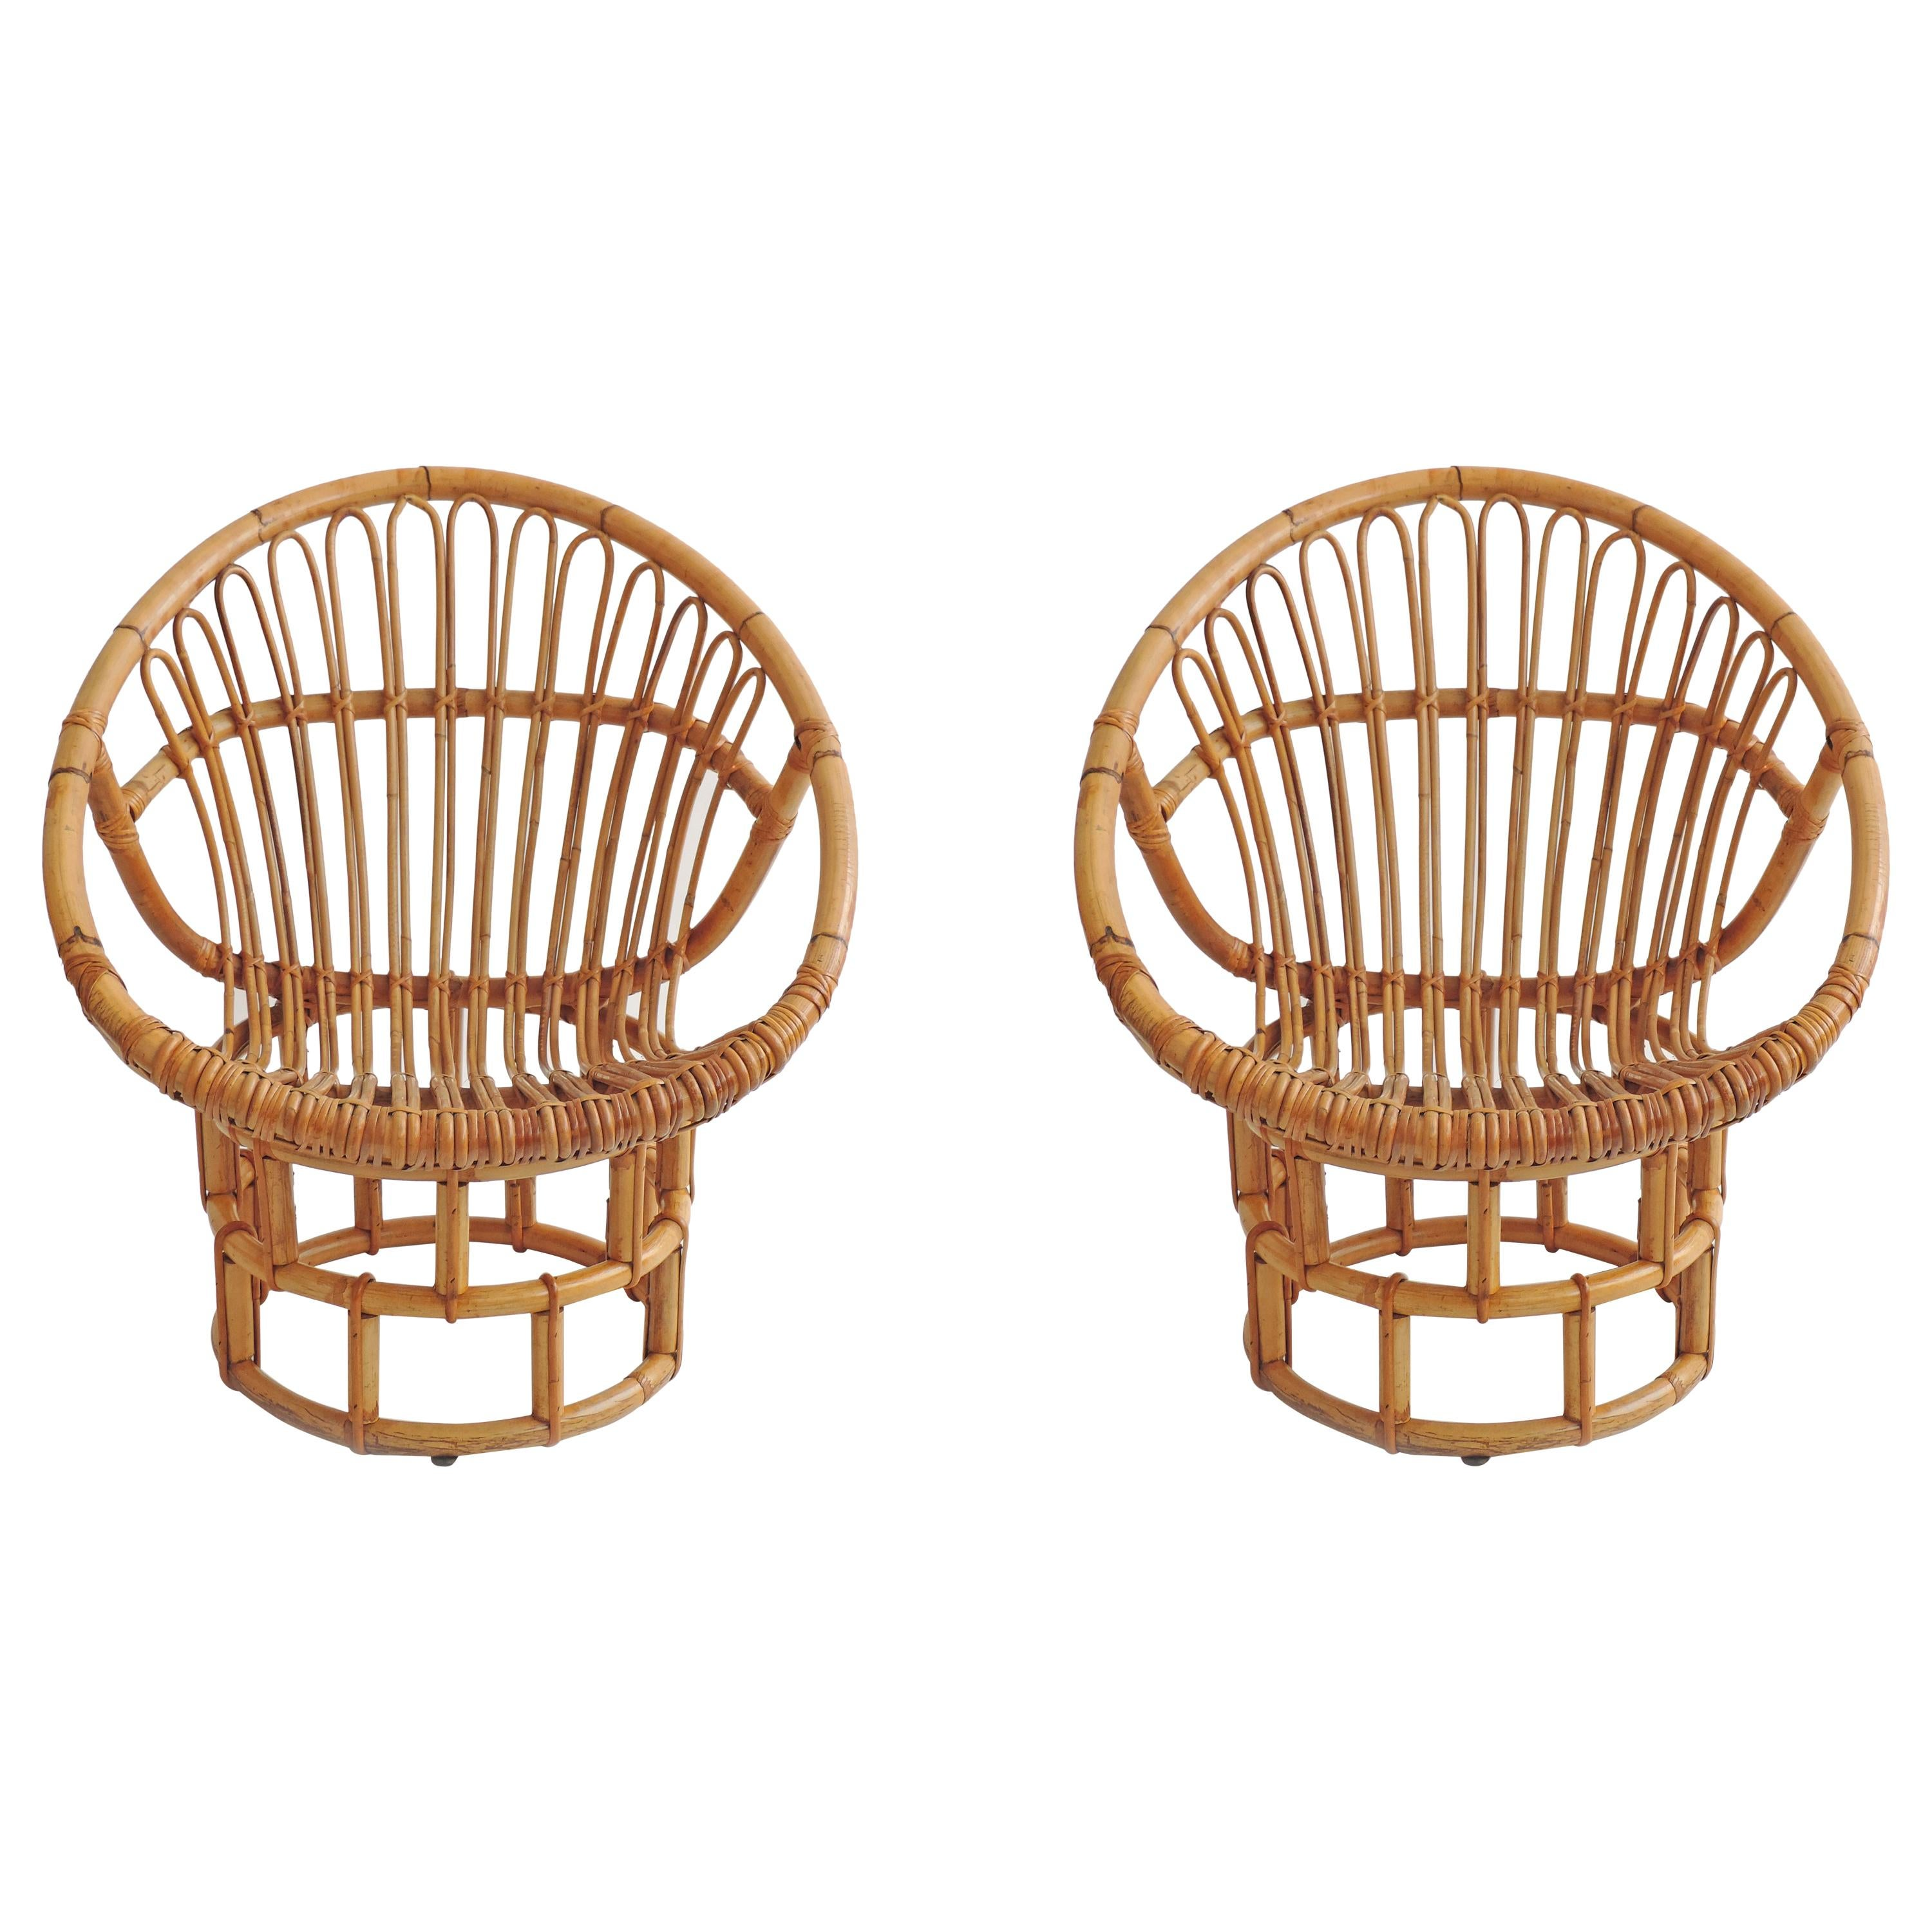 Pair of Bamboo Lounge Chairs, Italy, 1960s